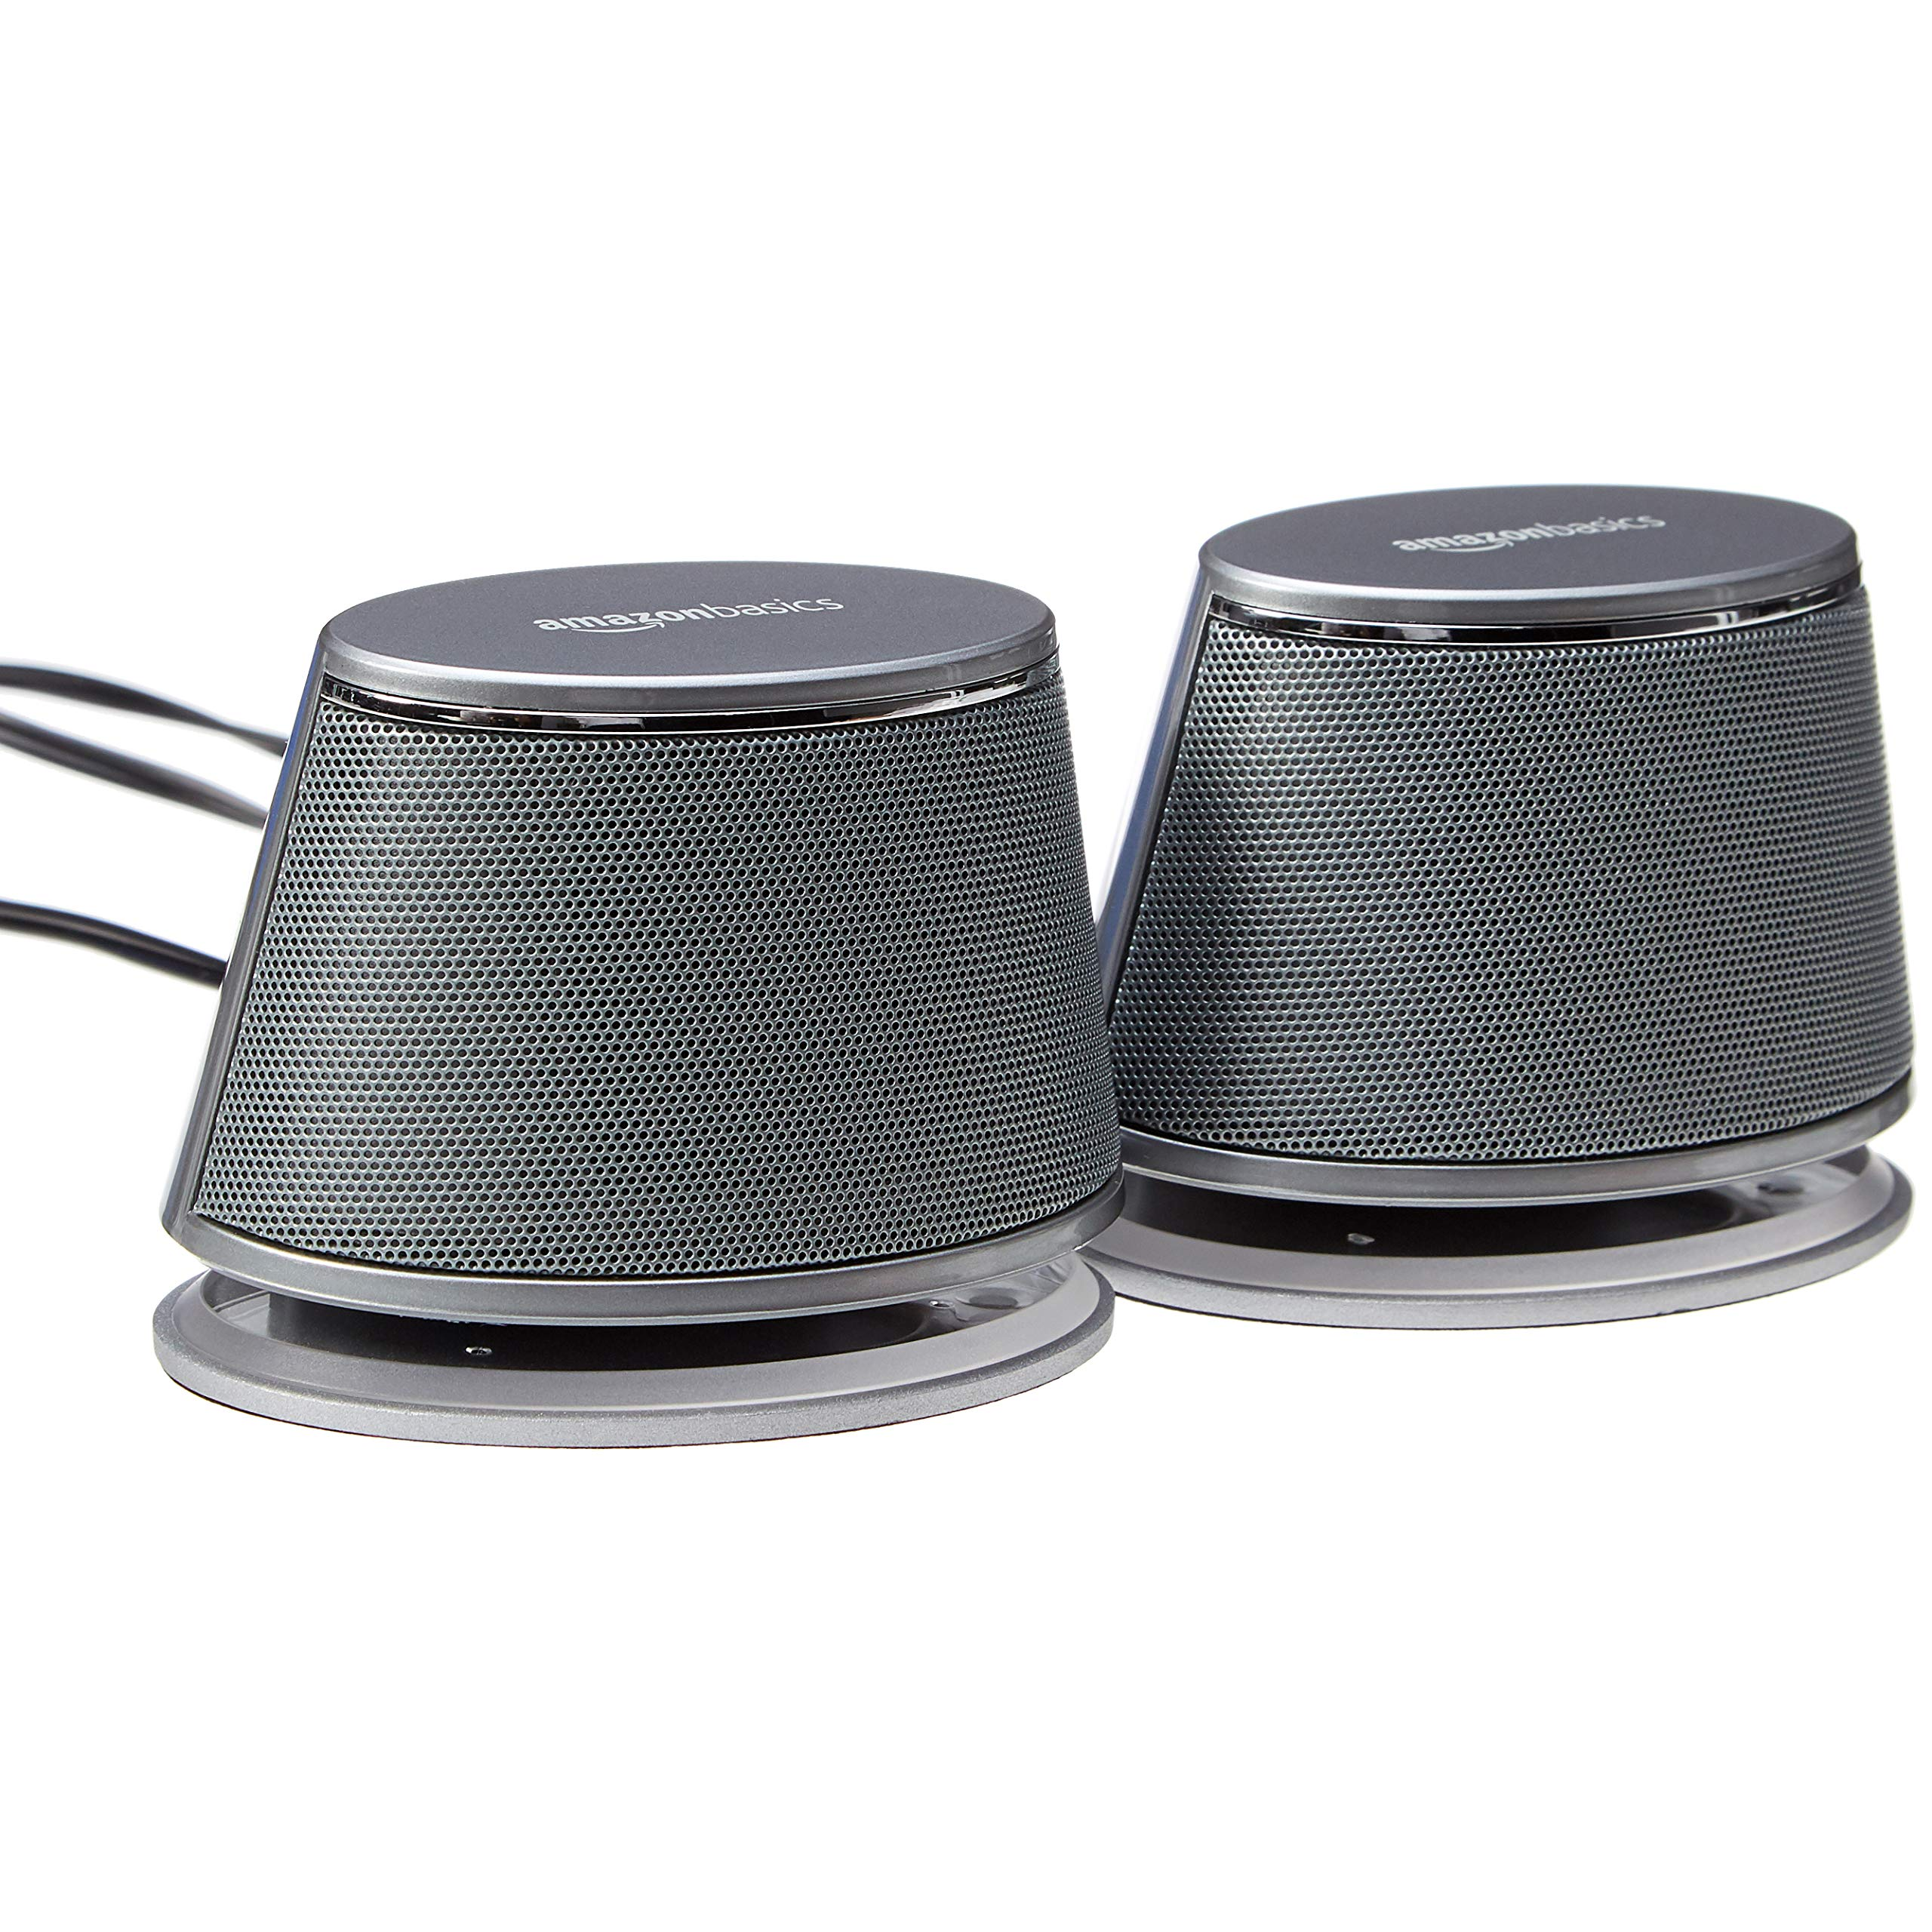 AmazonBasics USB-Powered PC Computer Speakers with Dynamic Sound | Silver by AmazonBasics